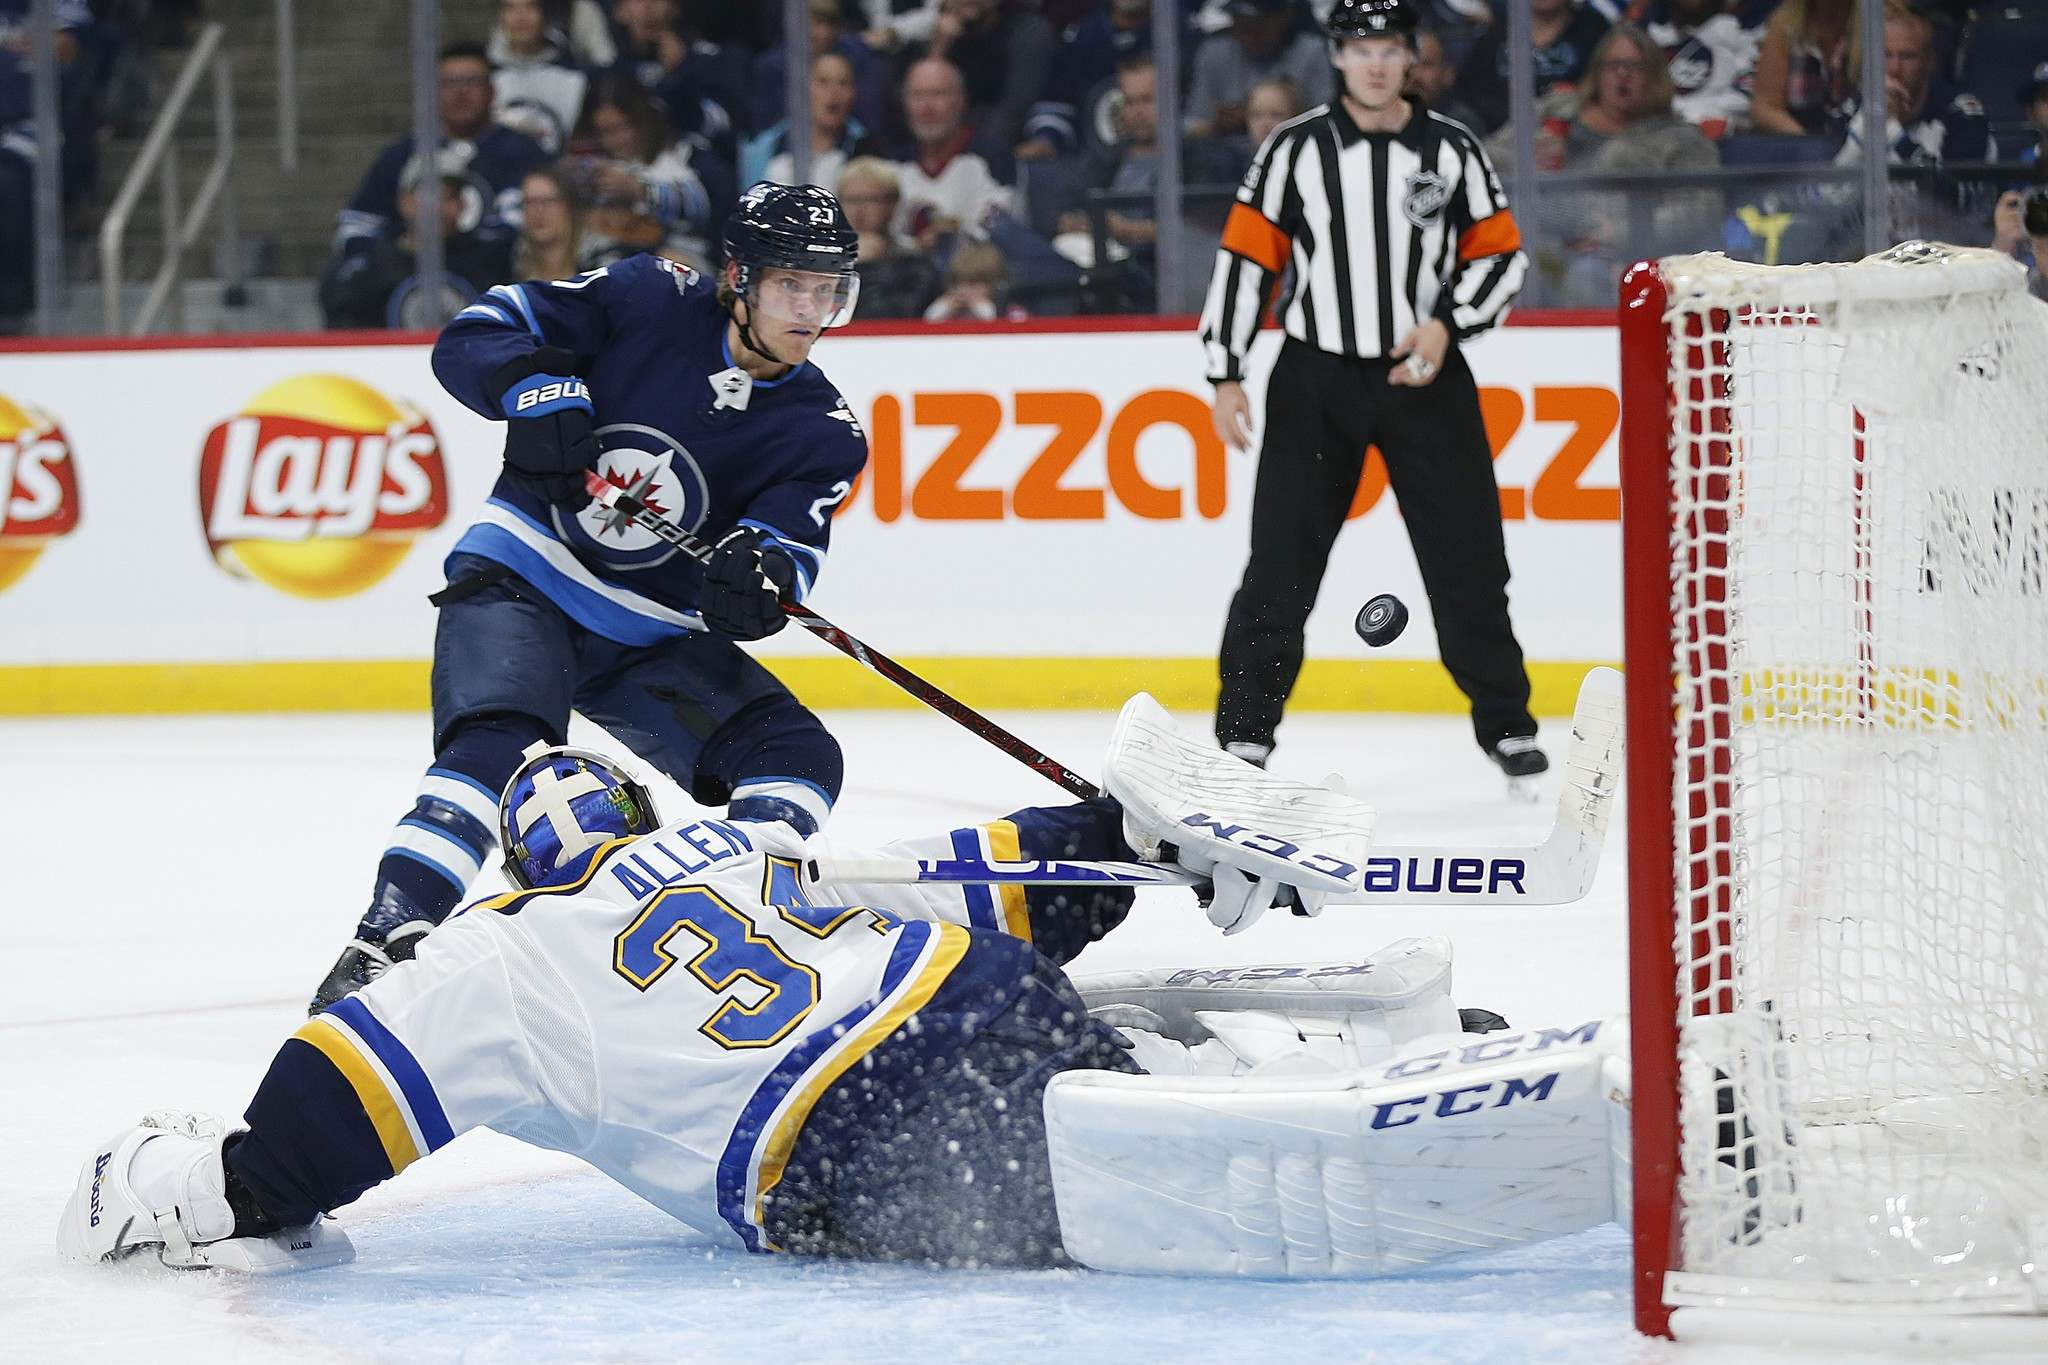 <p>Jets forward Nikolaj Ehlers fires a shot on Blues goaltender Jake Allen during Friday's NHL pre-season game at Bell MTS Place. Adam Lowry scored after the shot hit the crossbar.</p></p>